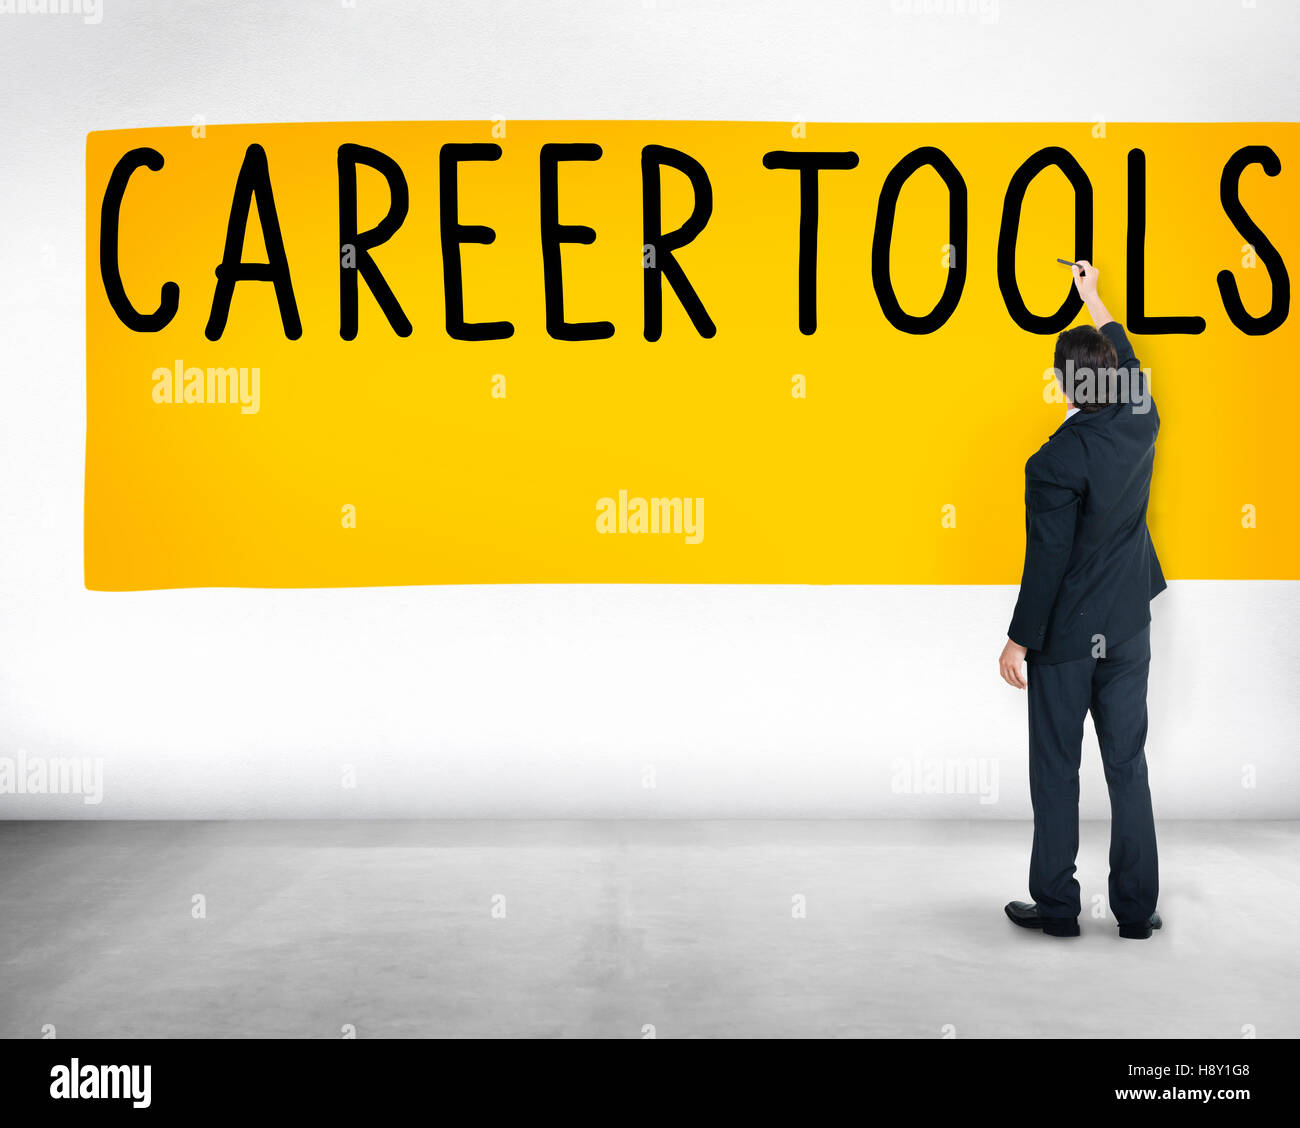 Career Tools Guidance Employment Hiring Concept - Stock Image